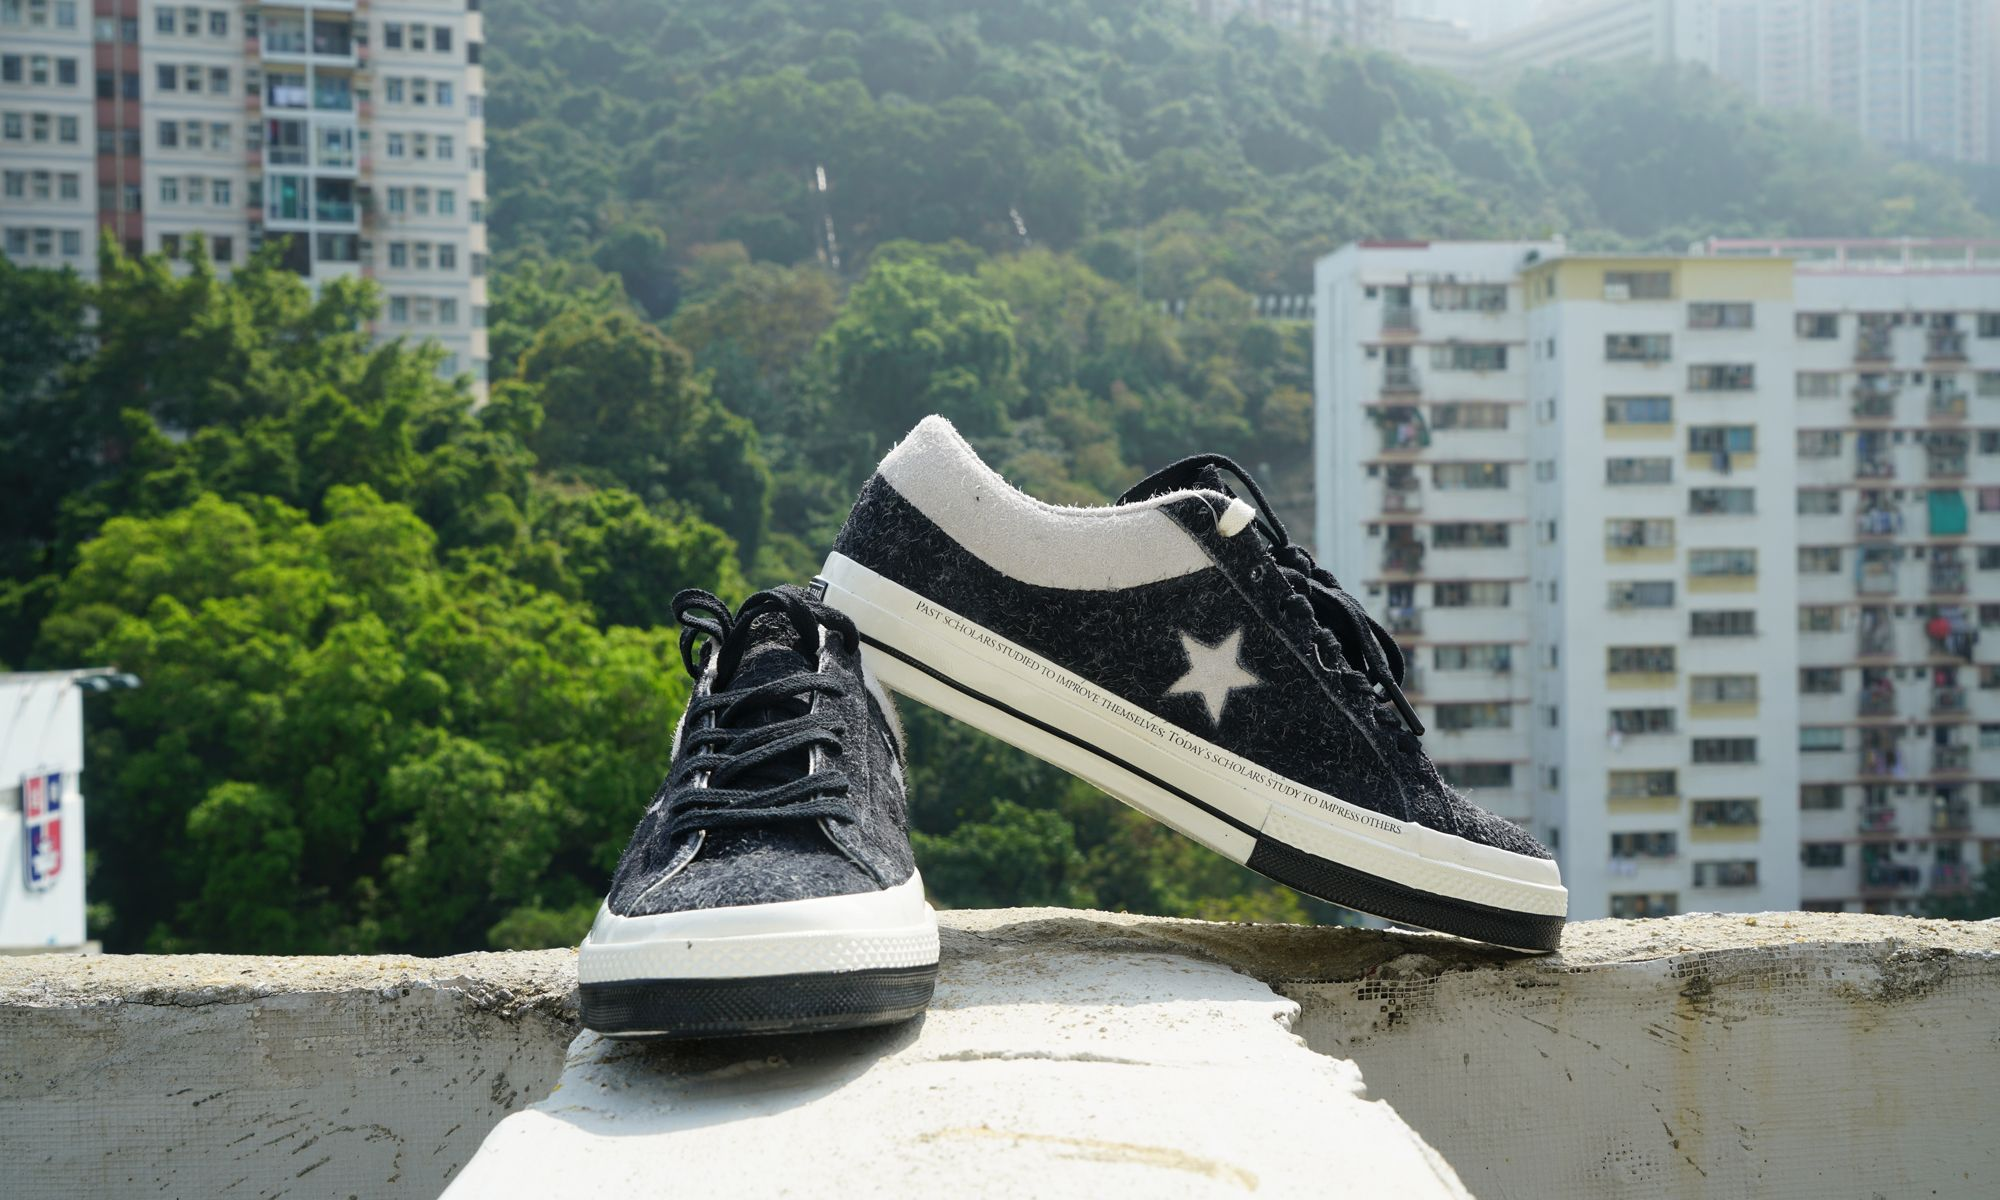 CLOT x Converse One Star